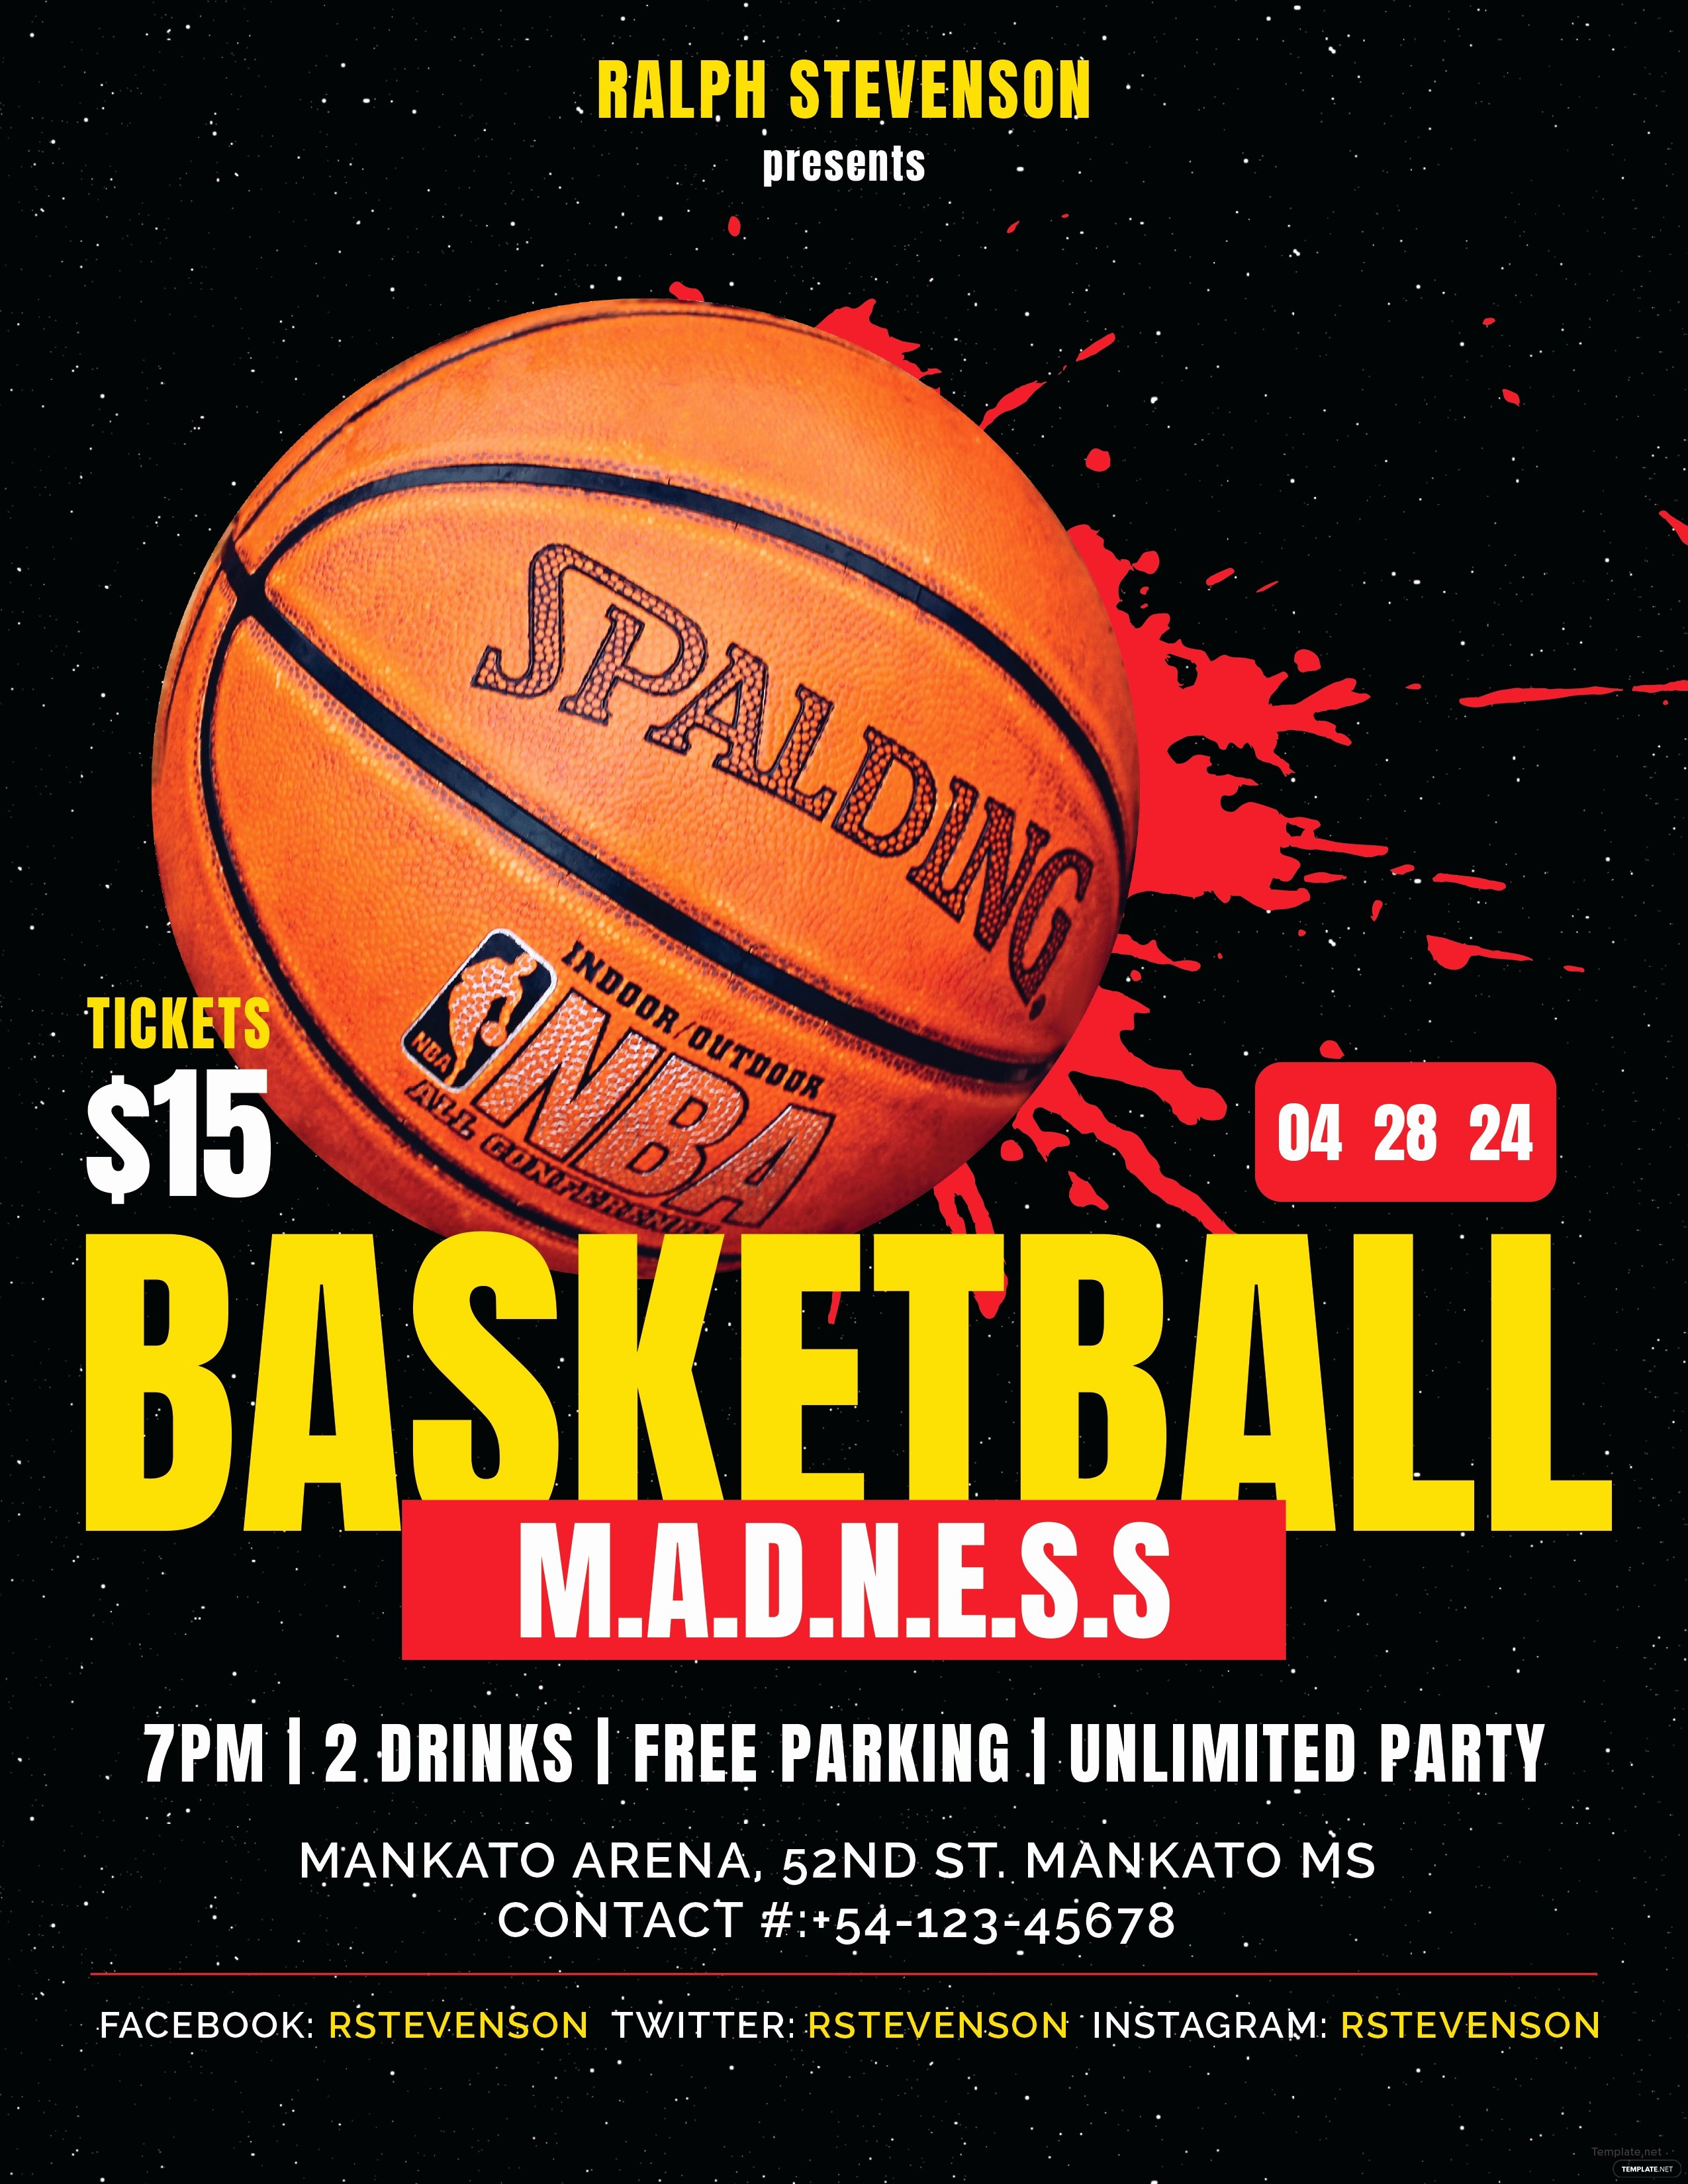 Basketball Flyer Template Free Luxury Free Basketball Madness Flyer Template In Adobe Shop